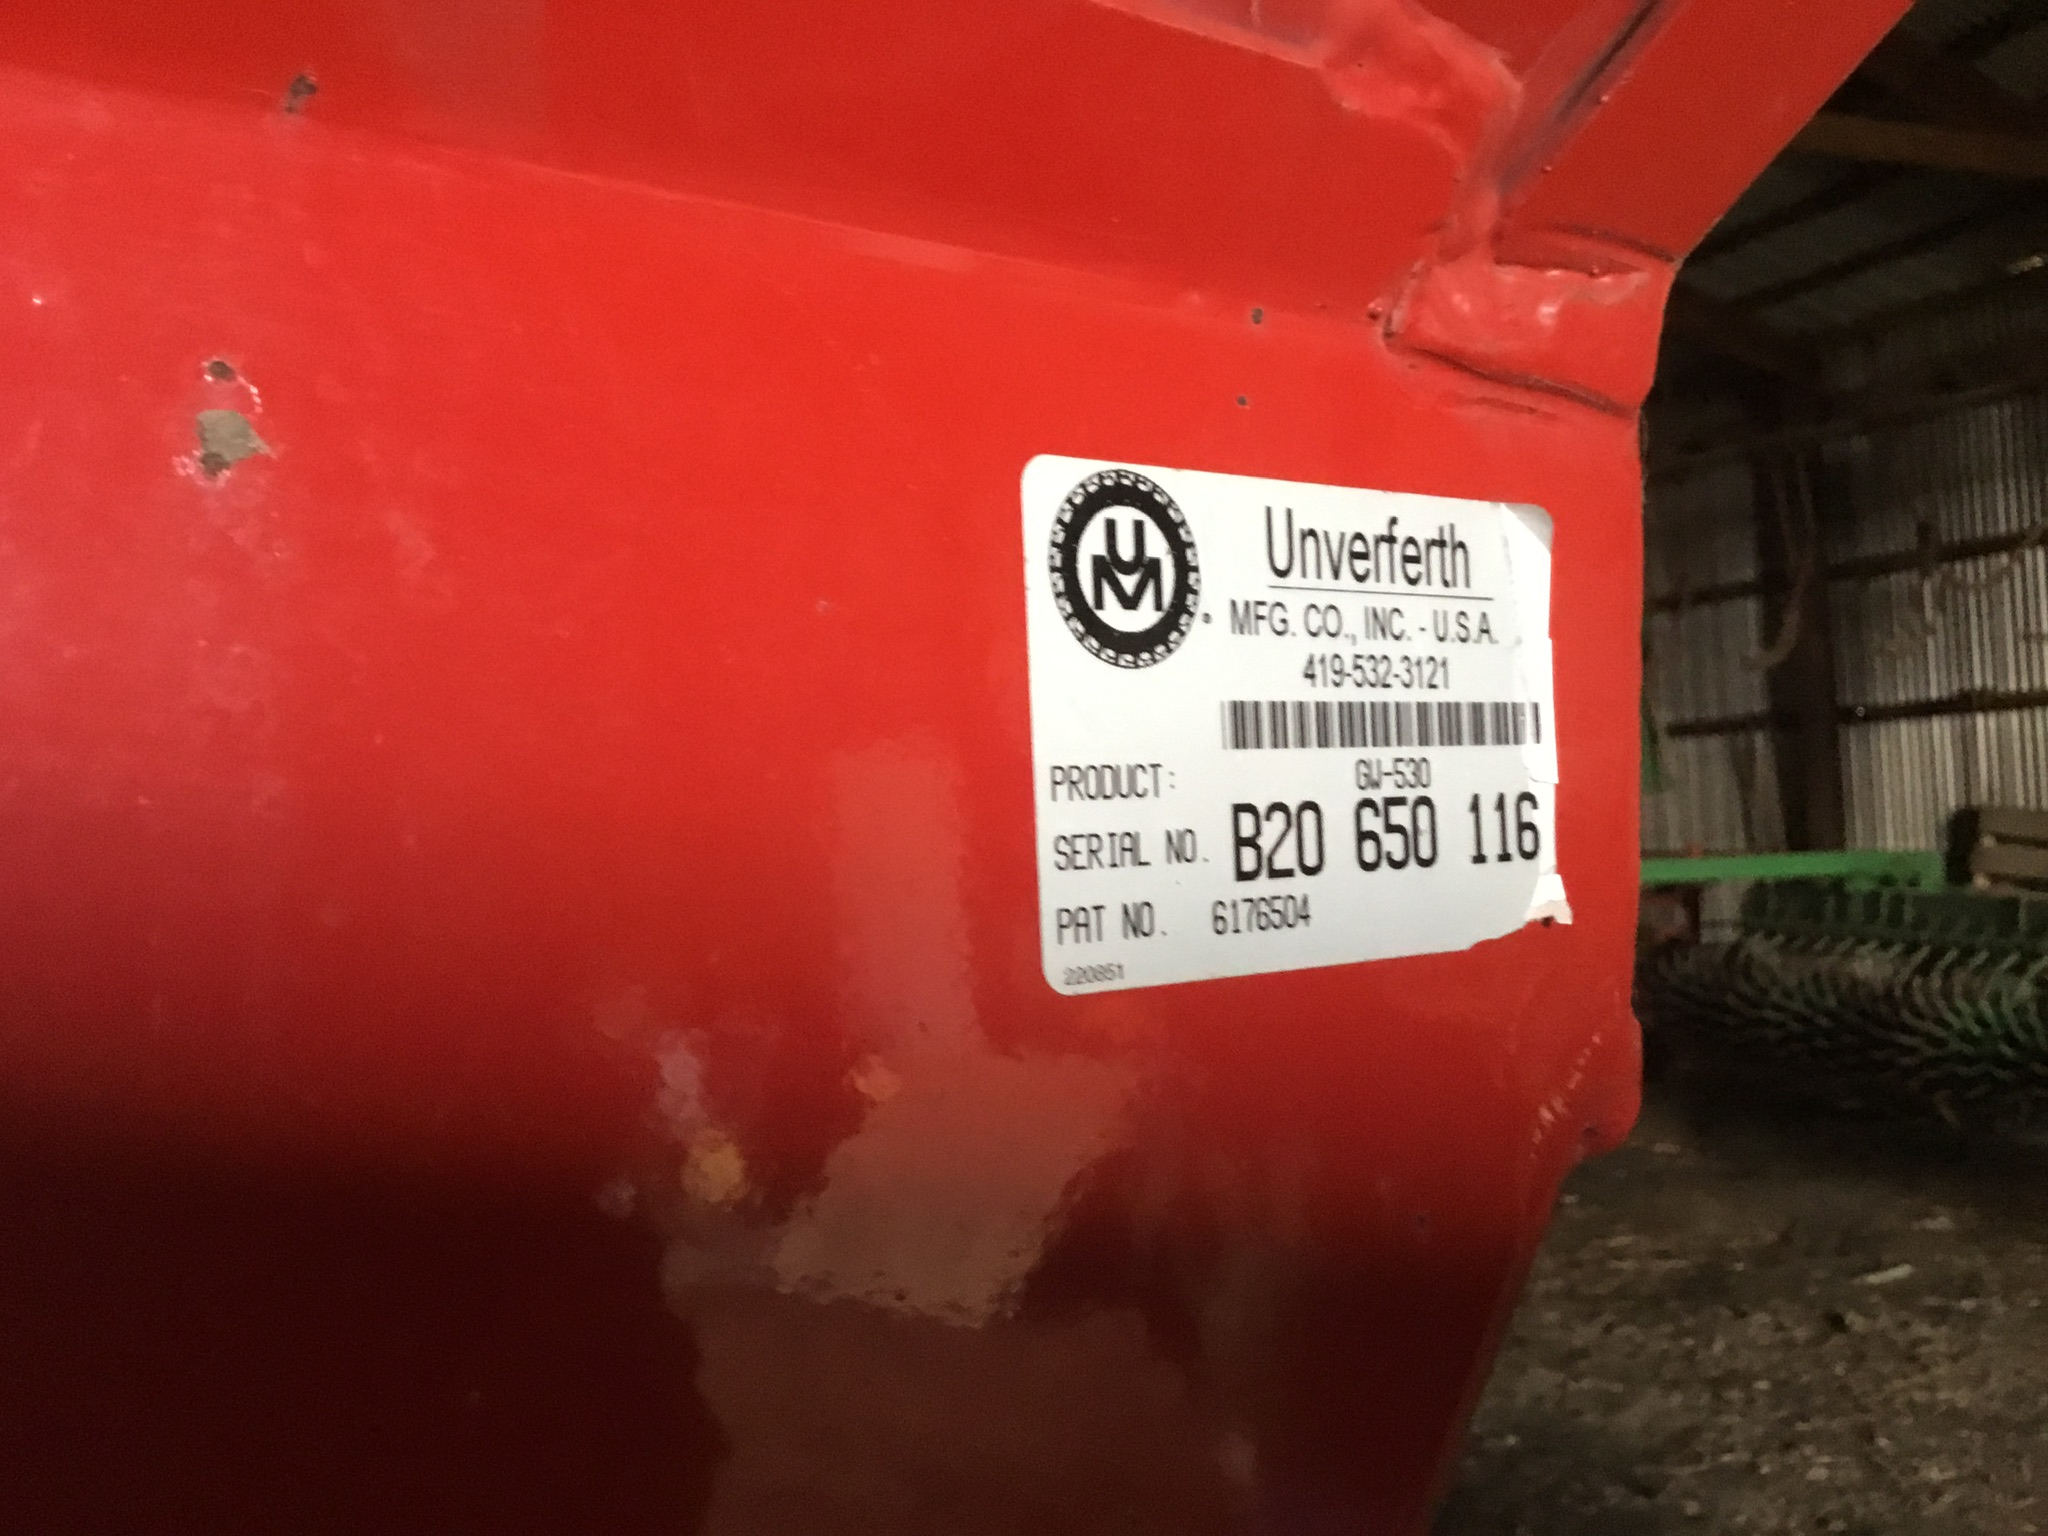 Unverferth 530 Side Dump Wagon, Brakes, 425-65R-22.5 Tires, Serial #B206-50-116, Red, Sharp - Image 4 of 4